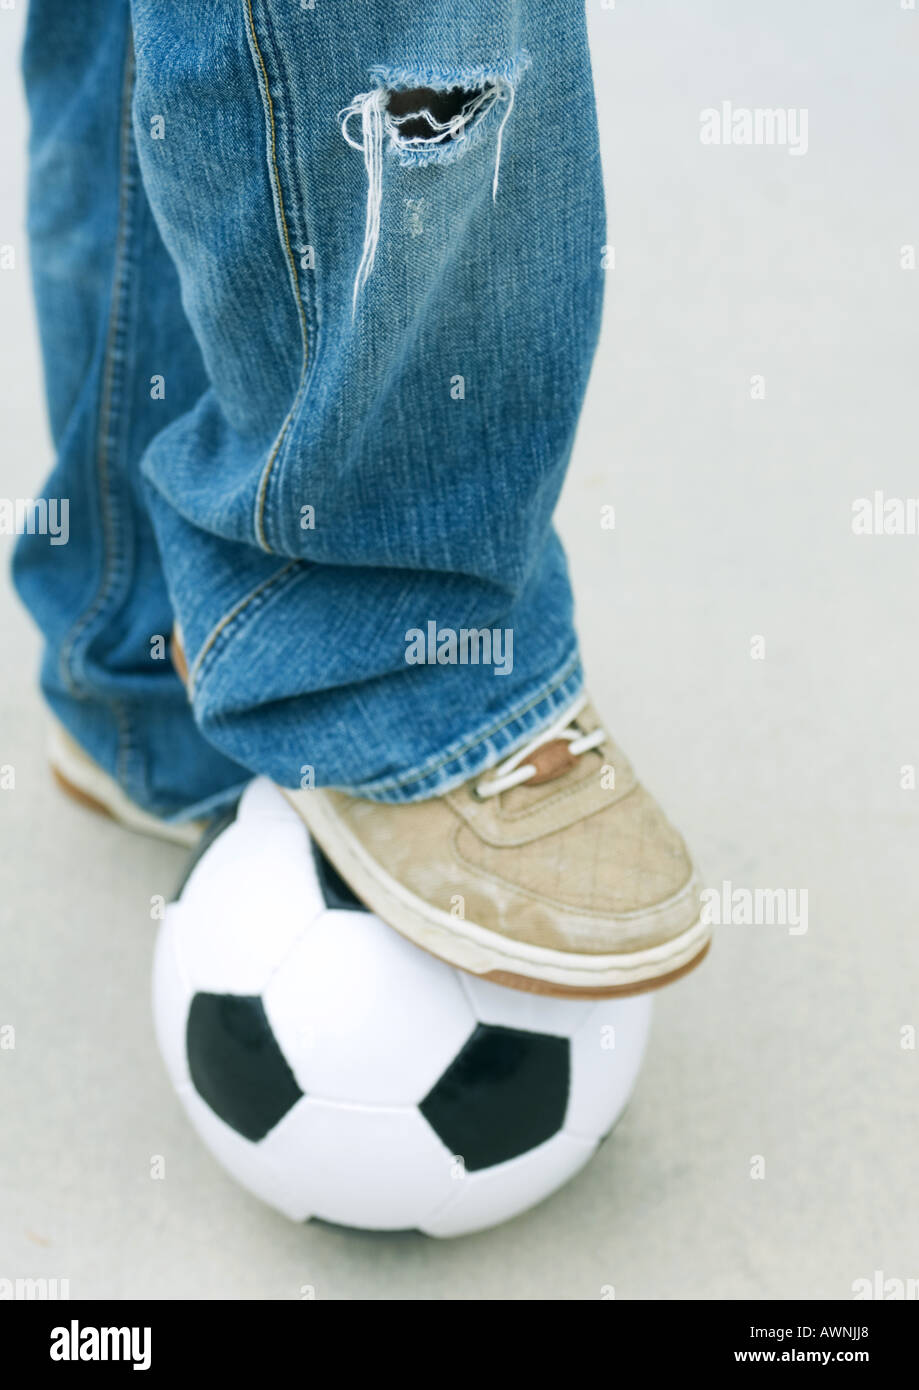 Boy resting foot on soccer ball, close-up - Stock Image